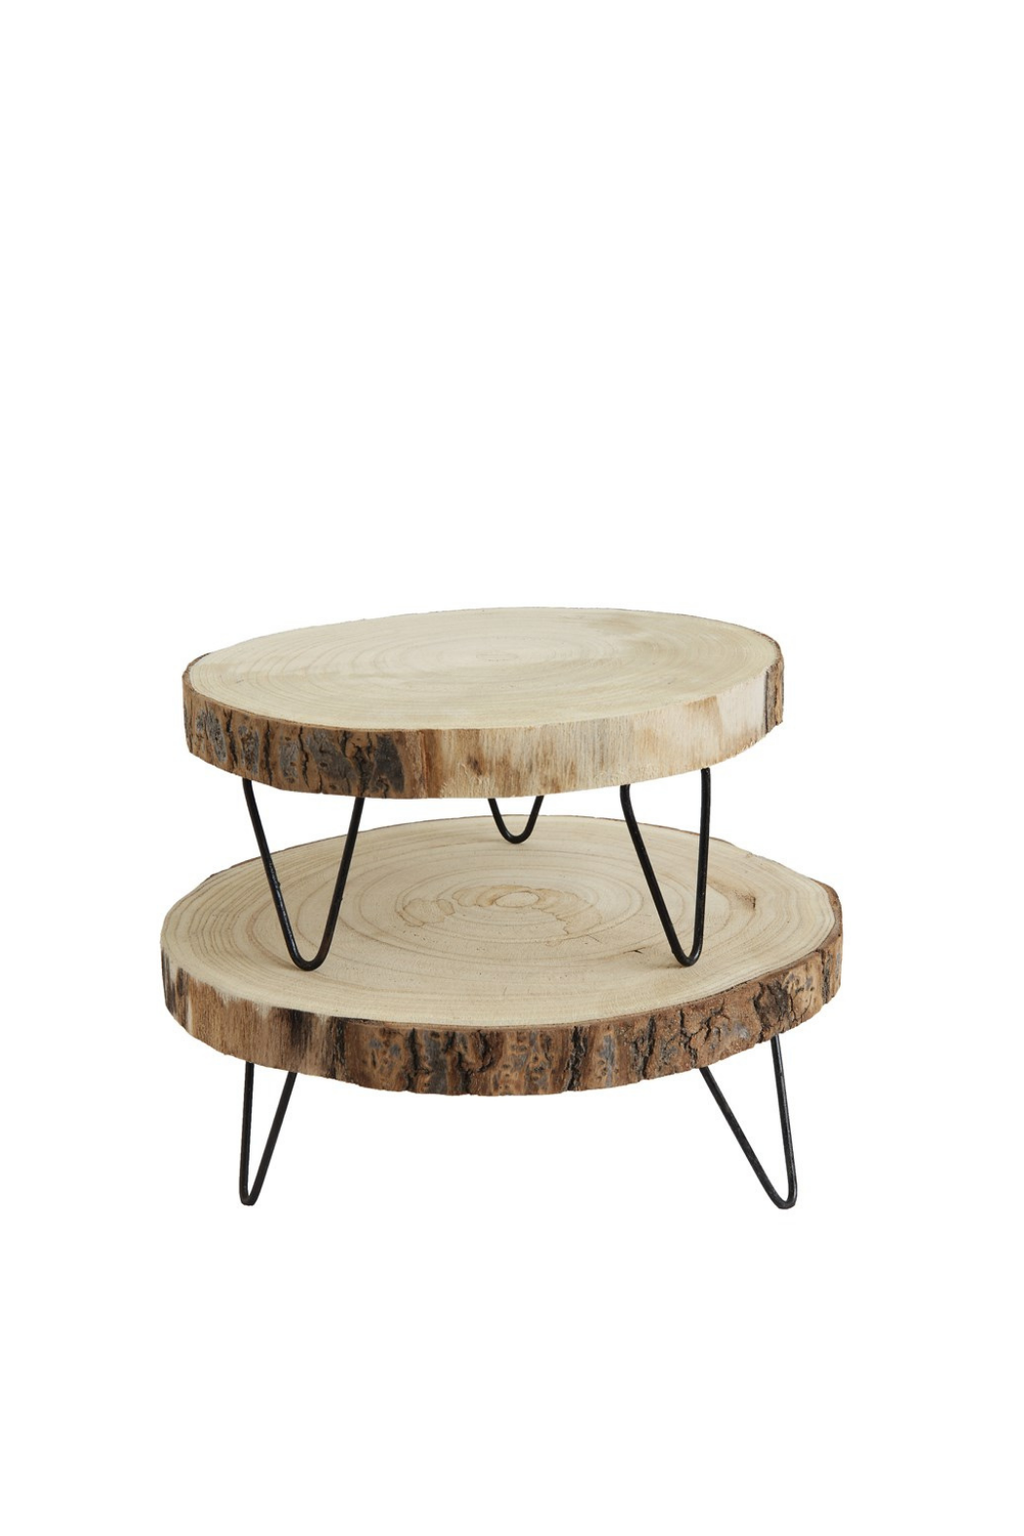 Creative Co-op Paulownia Wood Pedestal w/ Metal Legs